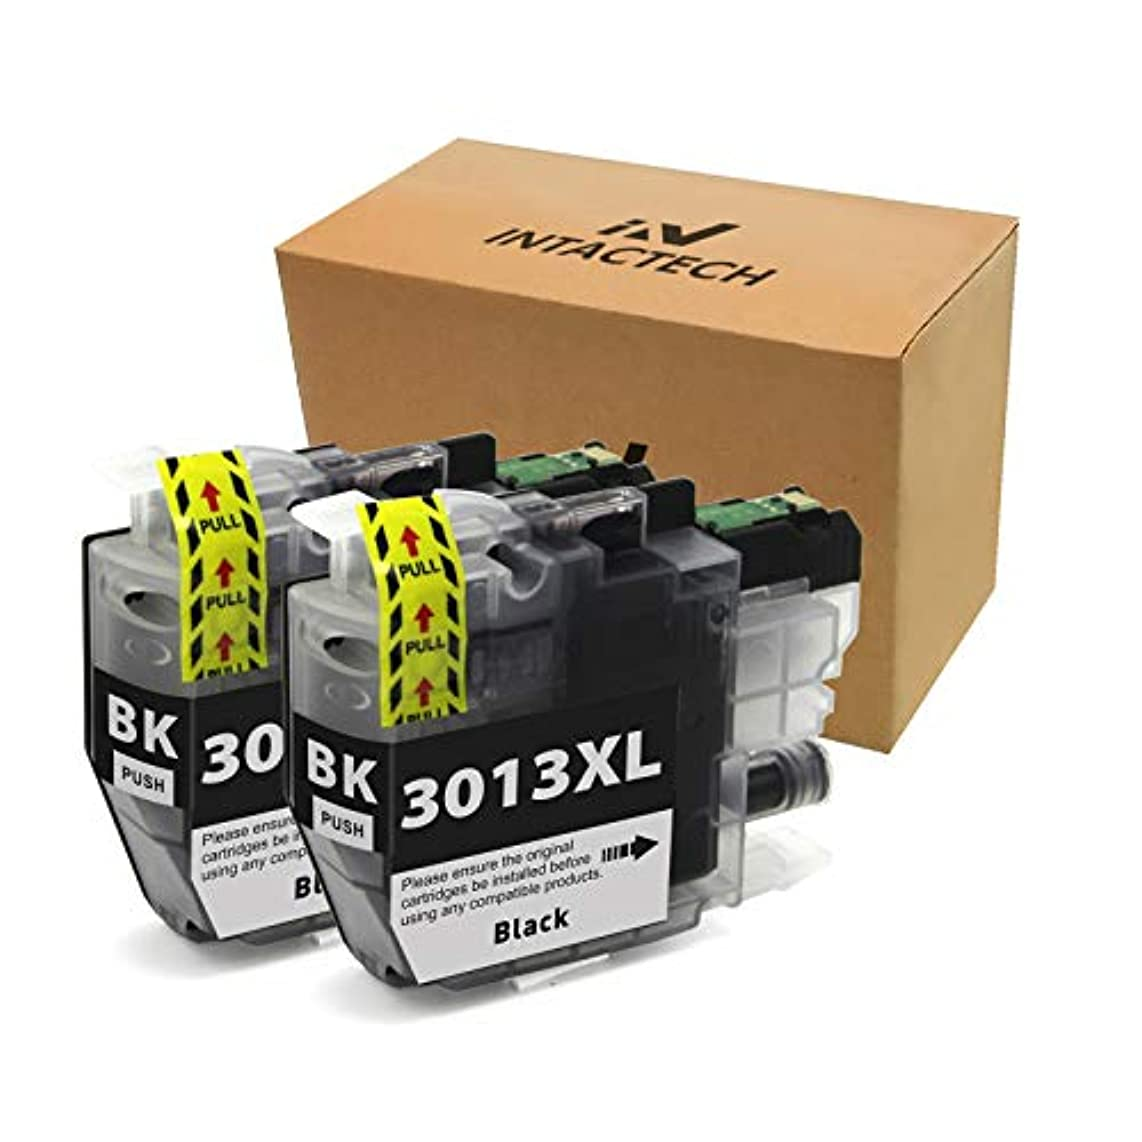 Intactech Compatible To Brother MFC-J491DW LC3013 Ink Cartridges 2 Black BK High Yield Work with Brother MFC-J491DW MFC-J497DW MFC-J690DW MFC-J895DW Inkjet Printer